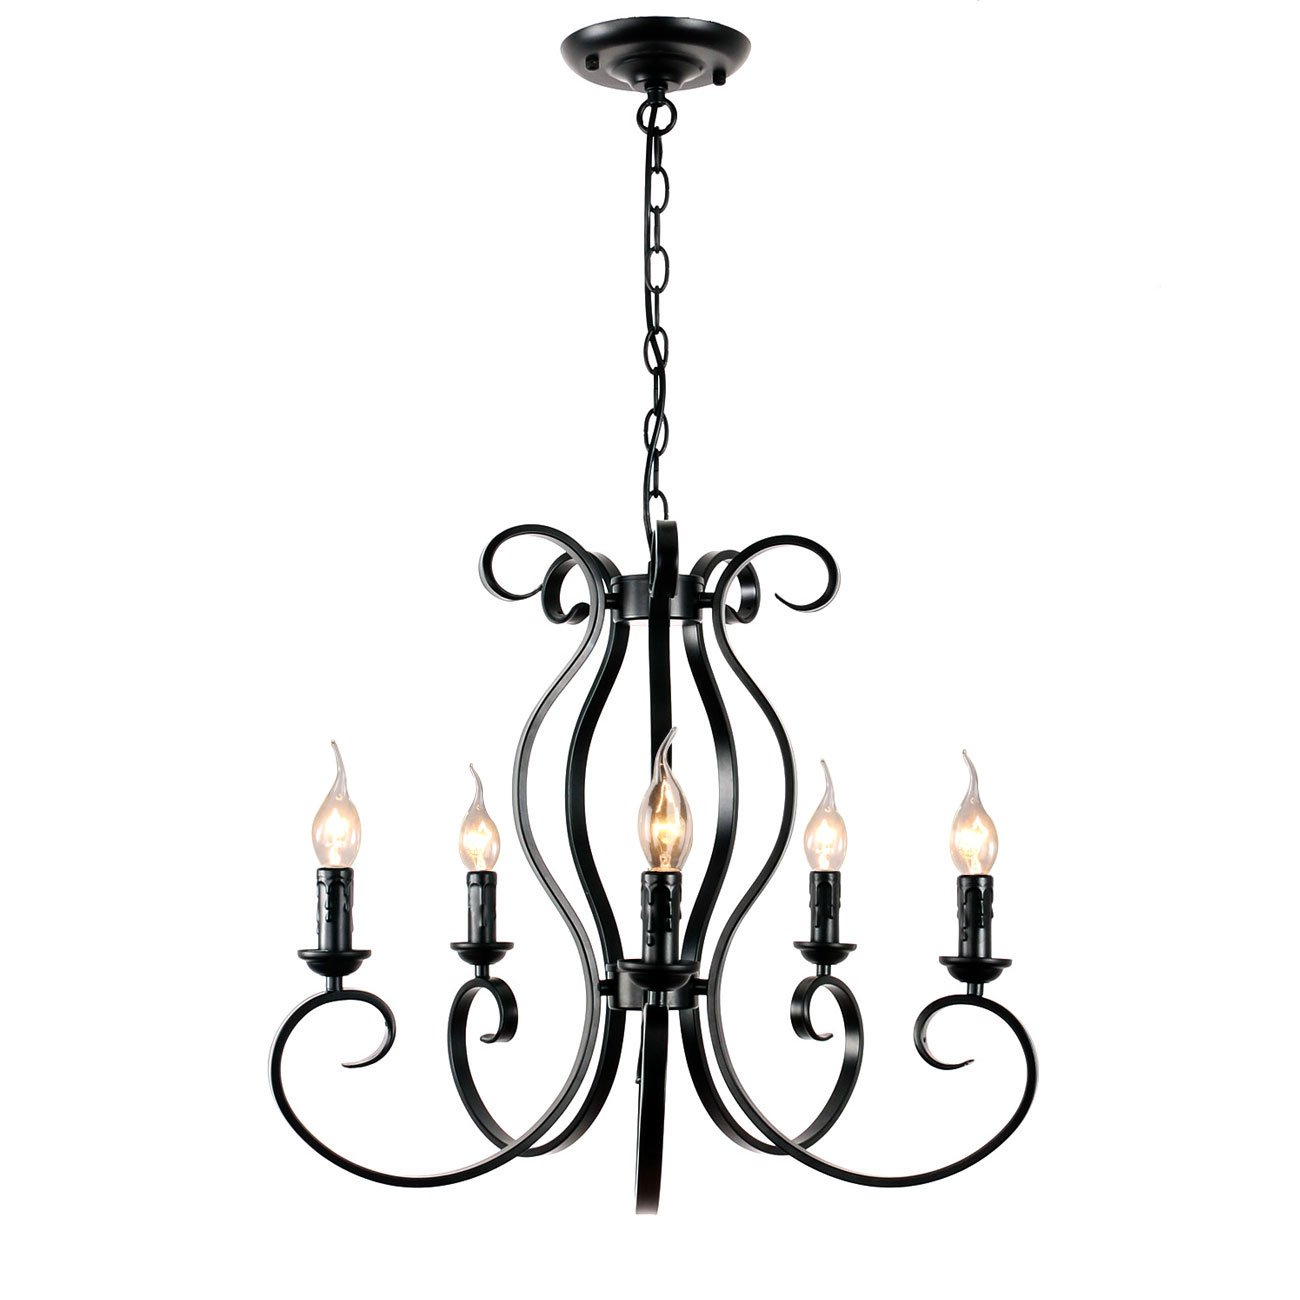 Unitary Brand Vintage Black Metal Candle Chandelier with 5 E12 Bulb Sockets 200W Painted Finish